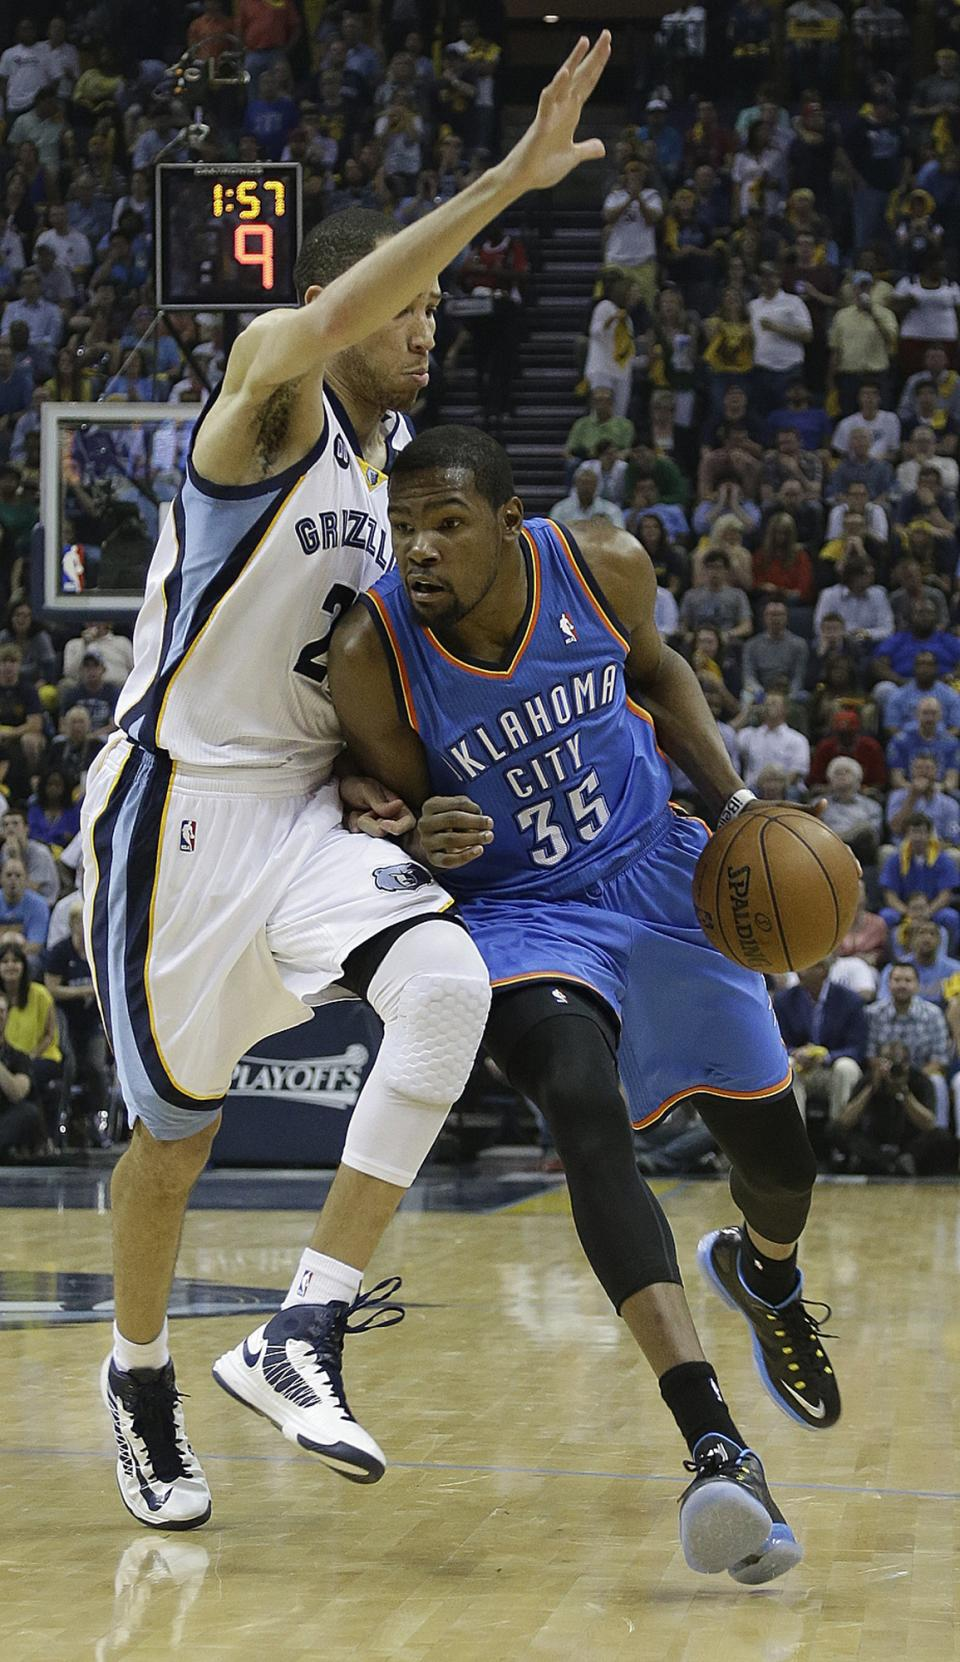 Memphis Grizzlies' Tayshaun Prince defends against Oklahoma City Thunder small forward Kevin Durant (35) during the the first half of Game 4 in a Western Conference semifinal NBA basketball playoff series in Memphis, Tenn., Monday, May 13, 2013. (AP Photo/Danny Johnston)